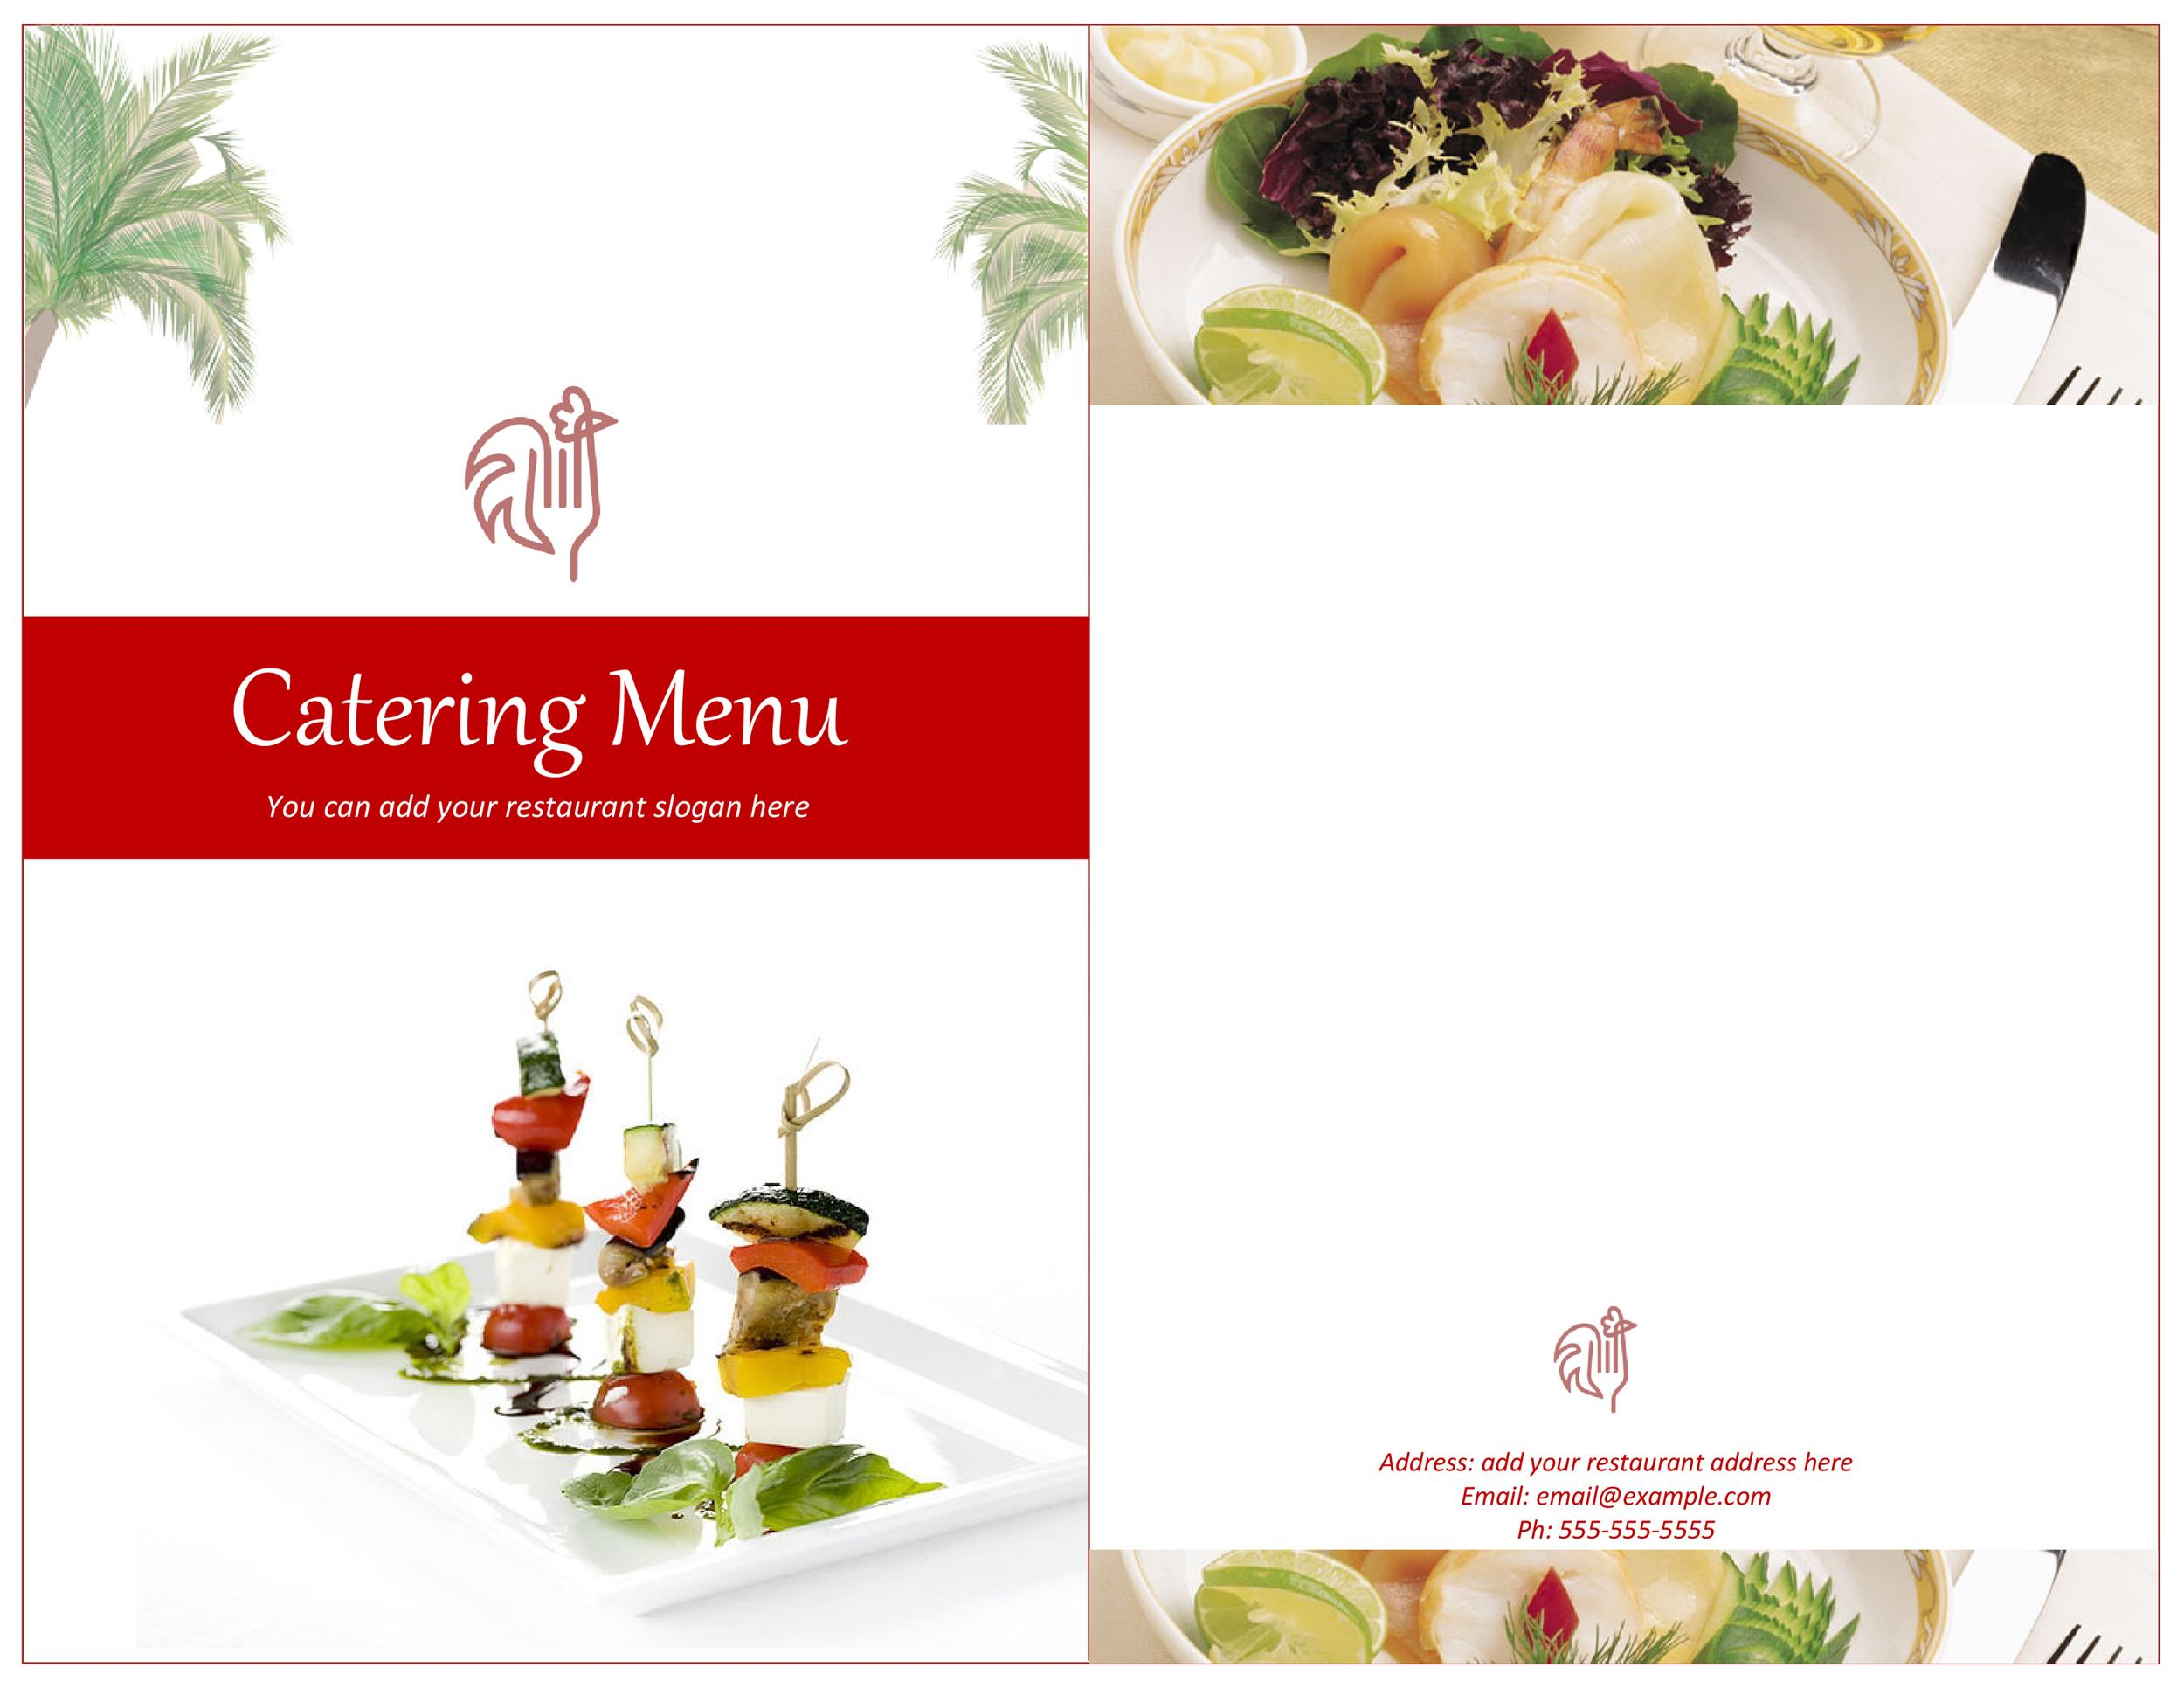 30 Restaurant Menu Templates  Designs ᐅ Template Lab